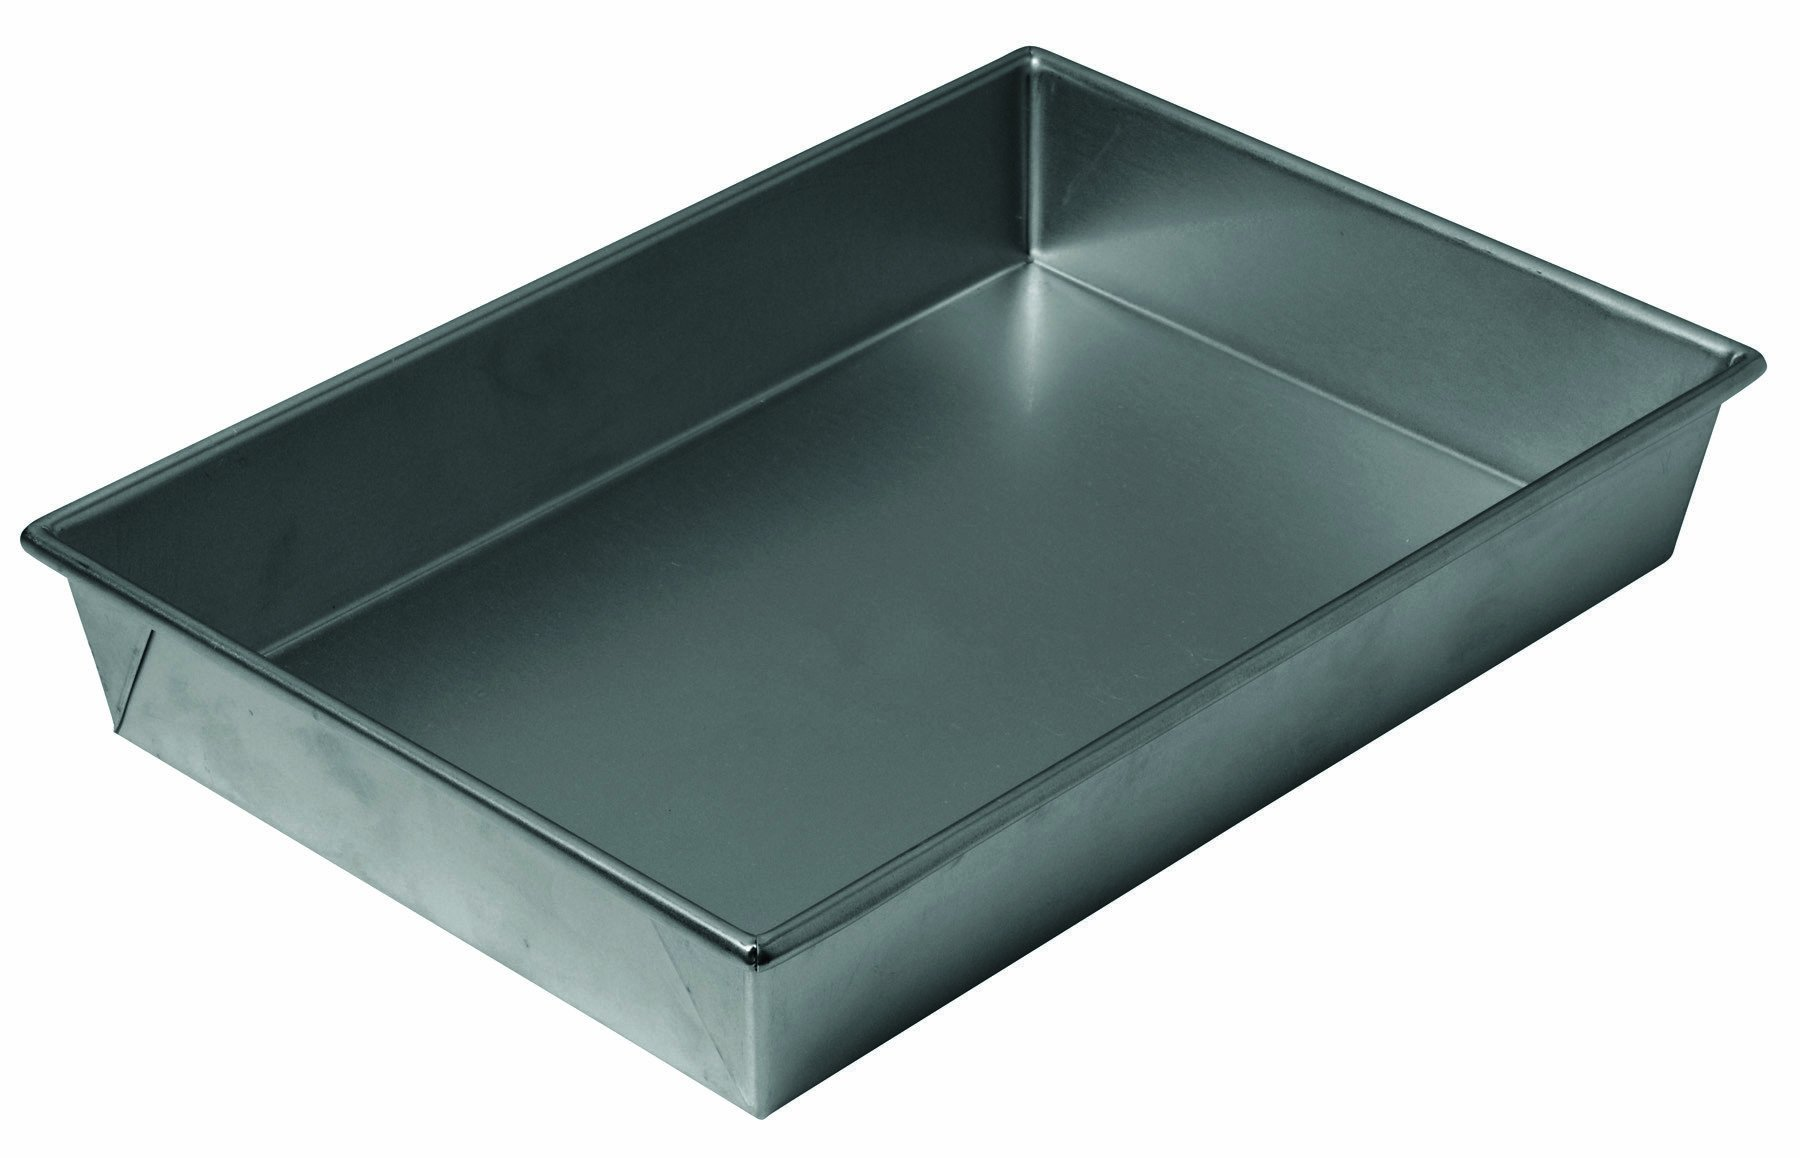 Chicago Metallic Professional Non-Stick Bake 'N Roast Pan, 13-Inch-by-9-Inch